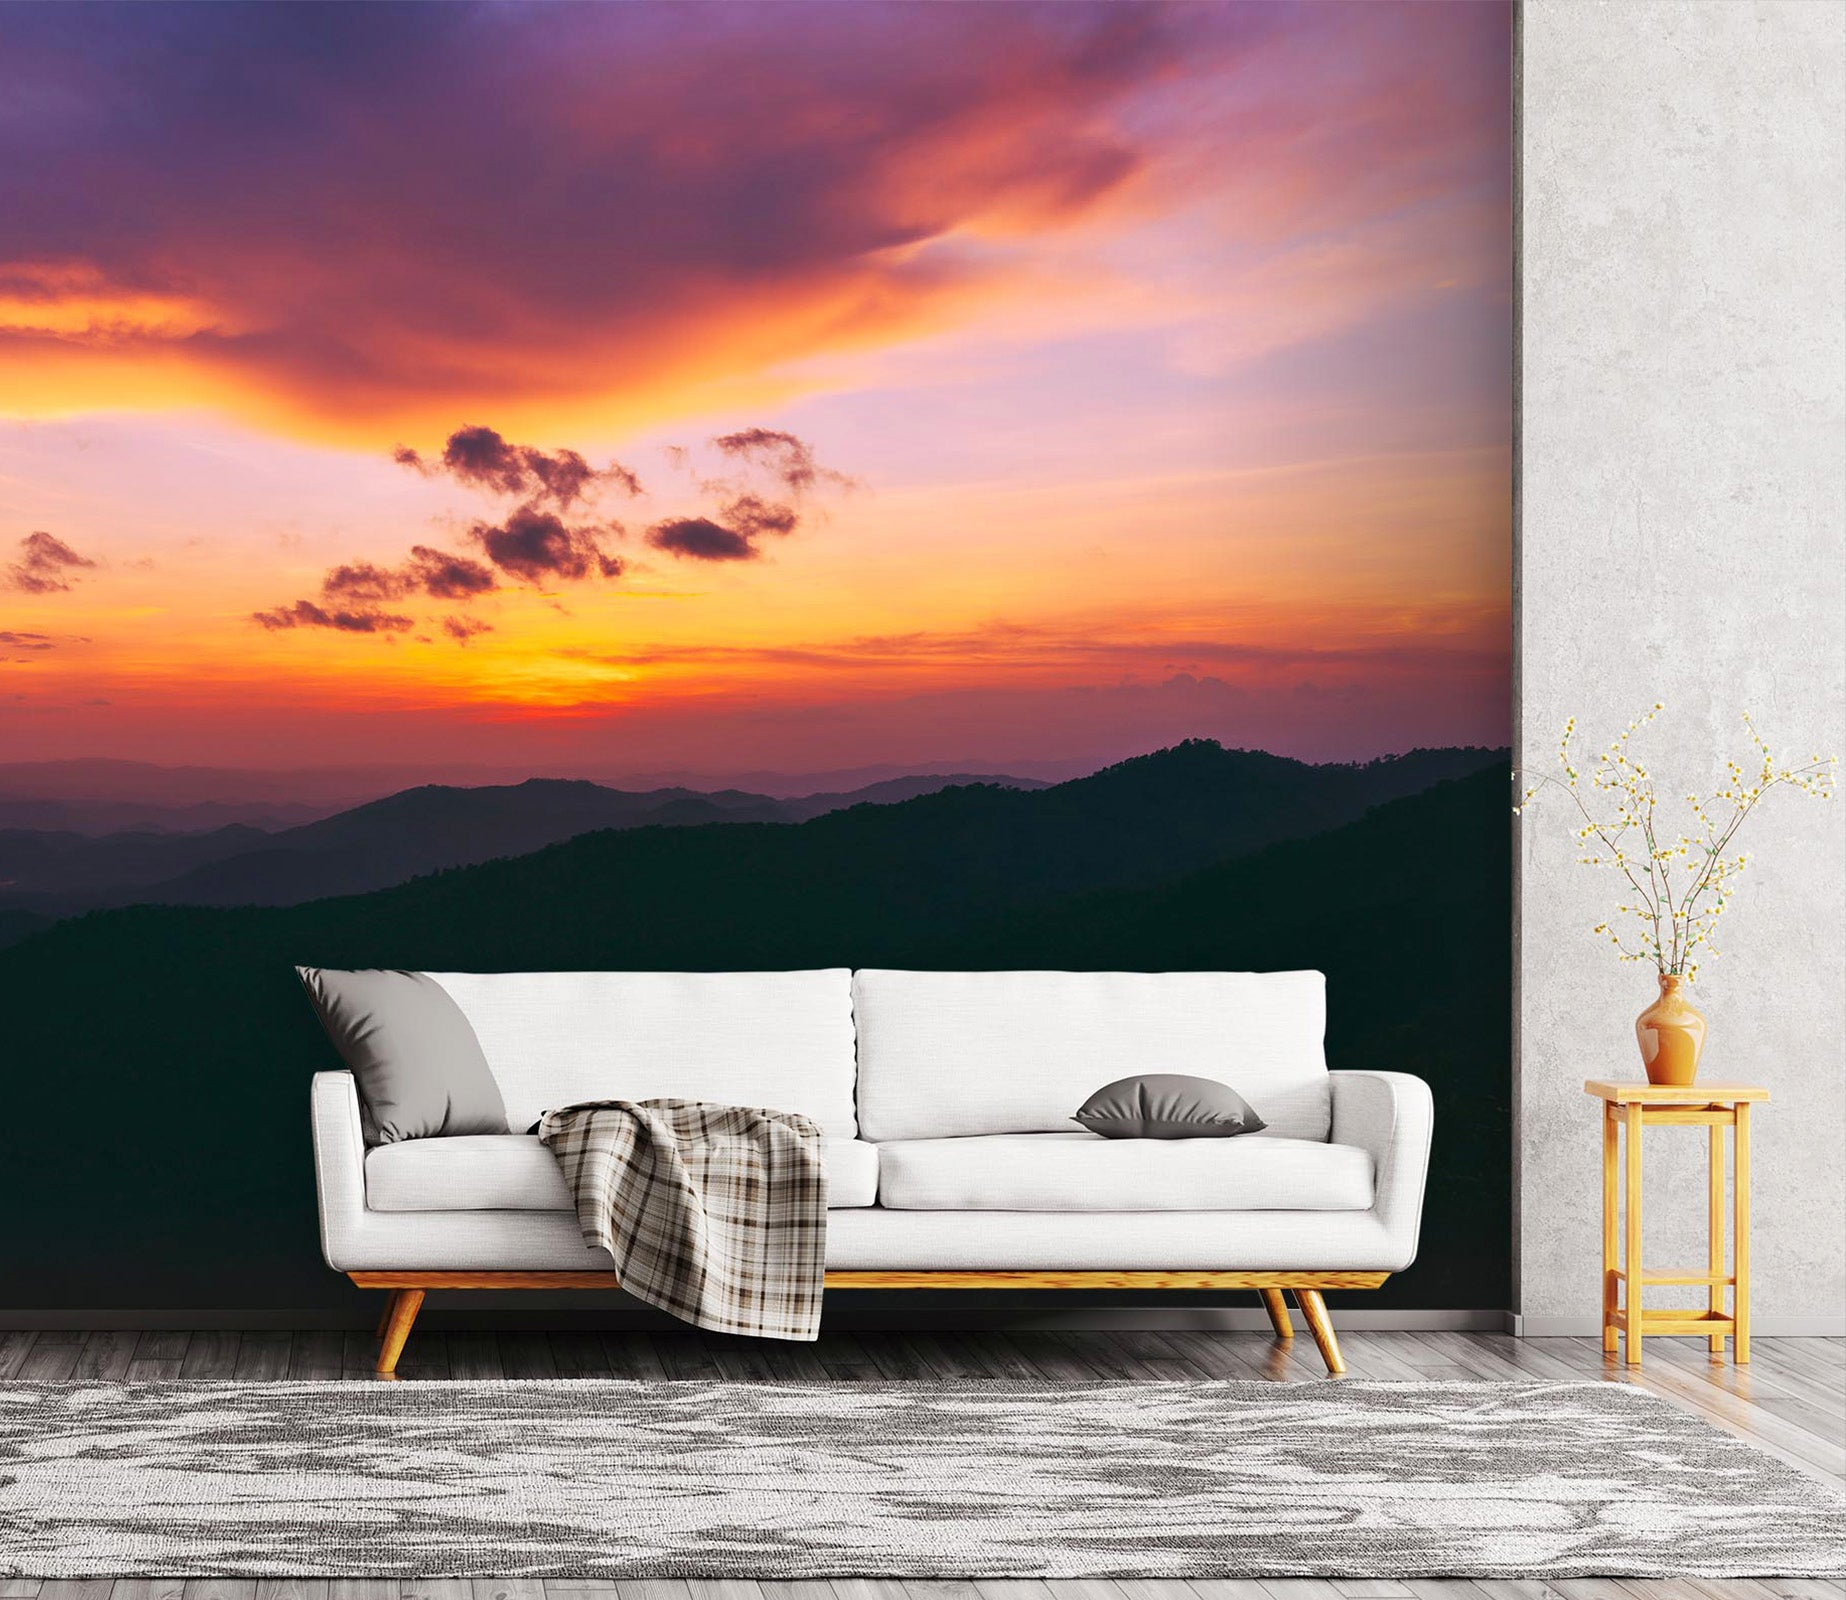 3d Sunset Mountain View 02 Wall Murals Aj Wallpaper